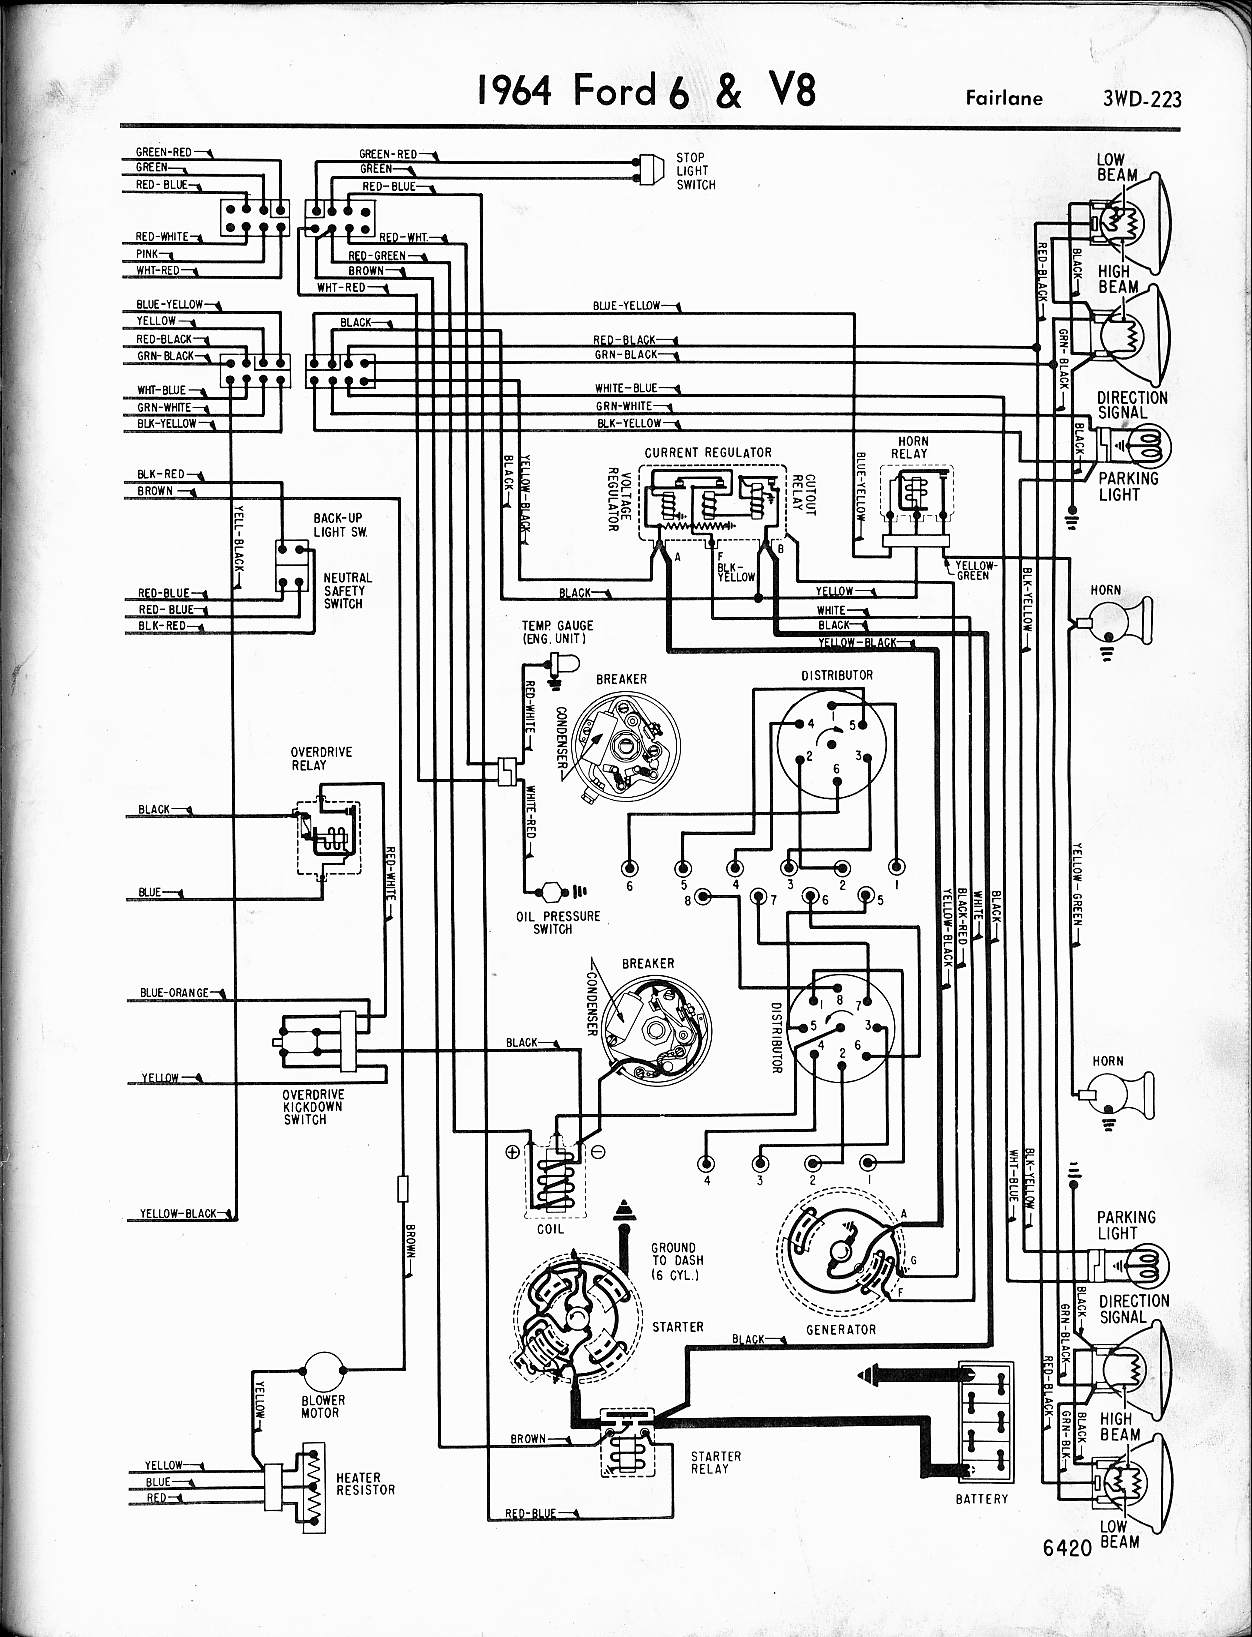 MWire5765 223 1964 f100 wiring diagram 1965 f100 wiring diagram \u2022 free wiring Ford Truck Wiring Diagrams at crackthecode.co